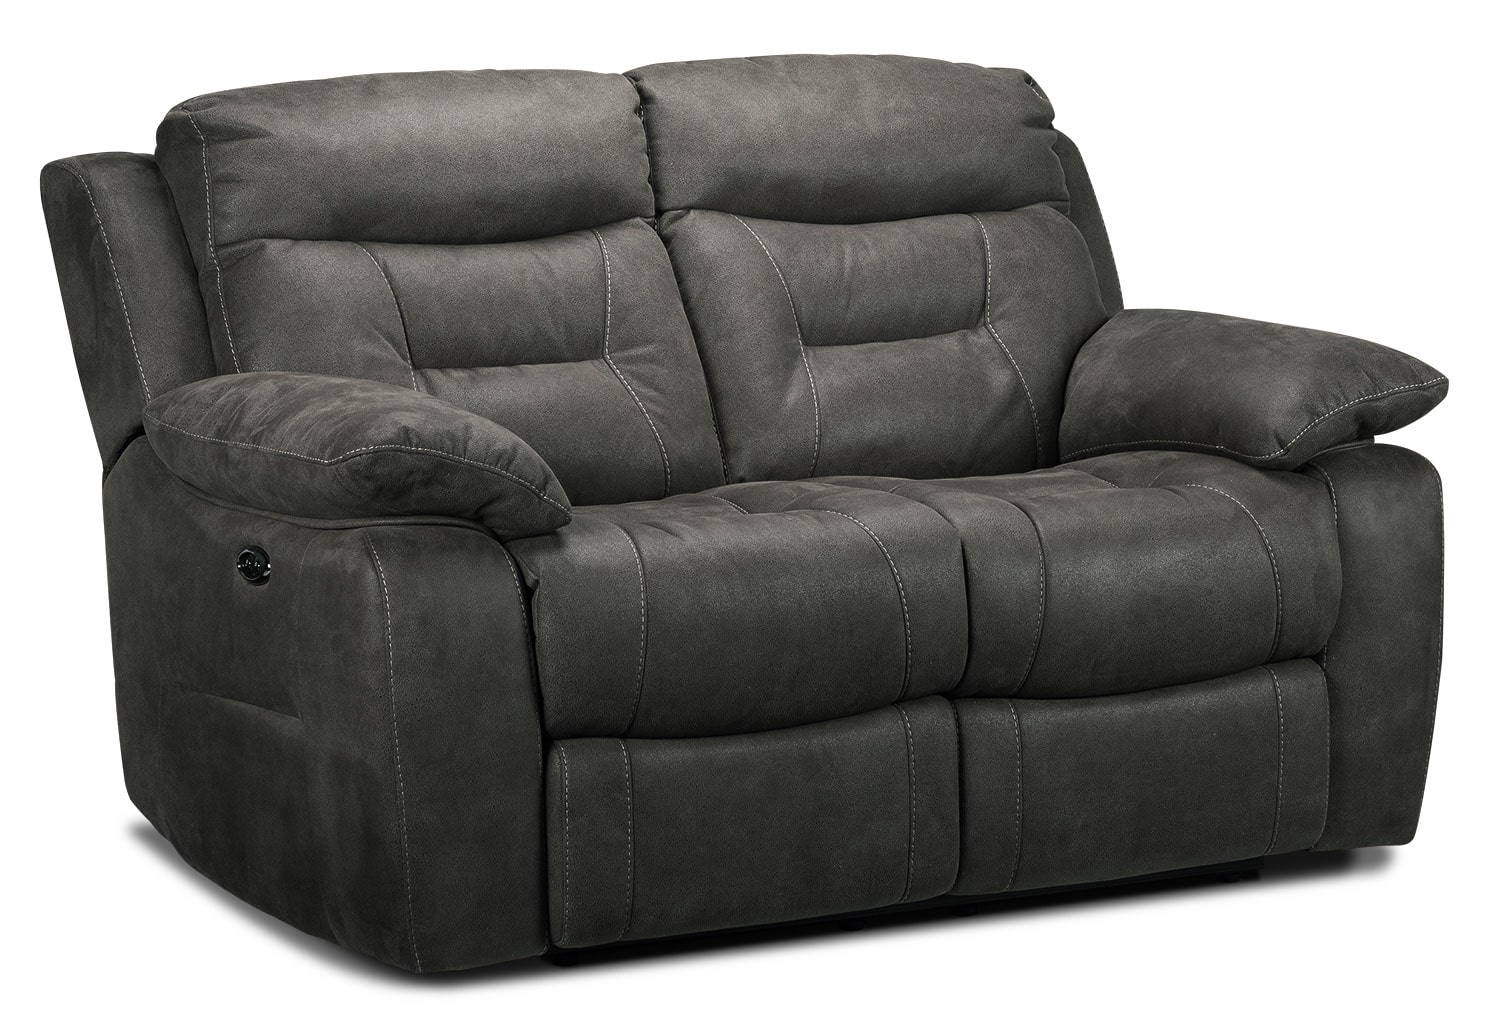 Collins Power Reclining Loveseat - Charcoal Grey